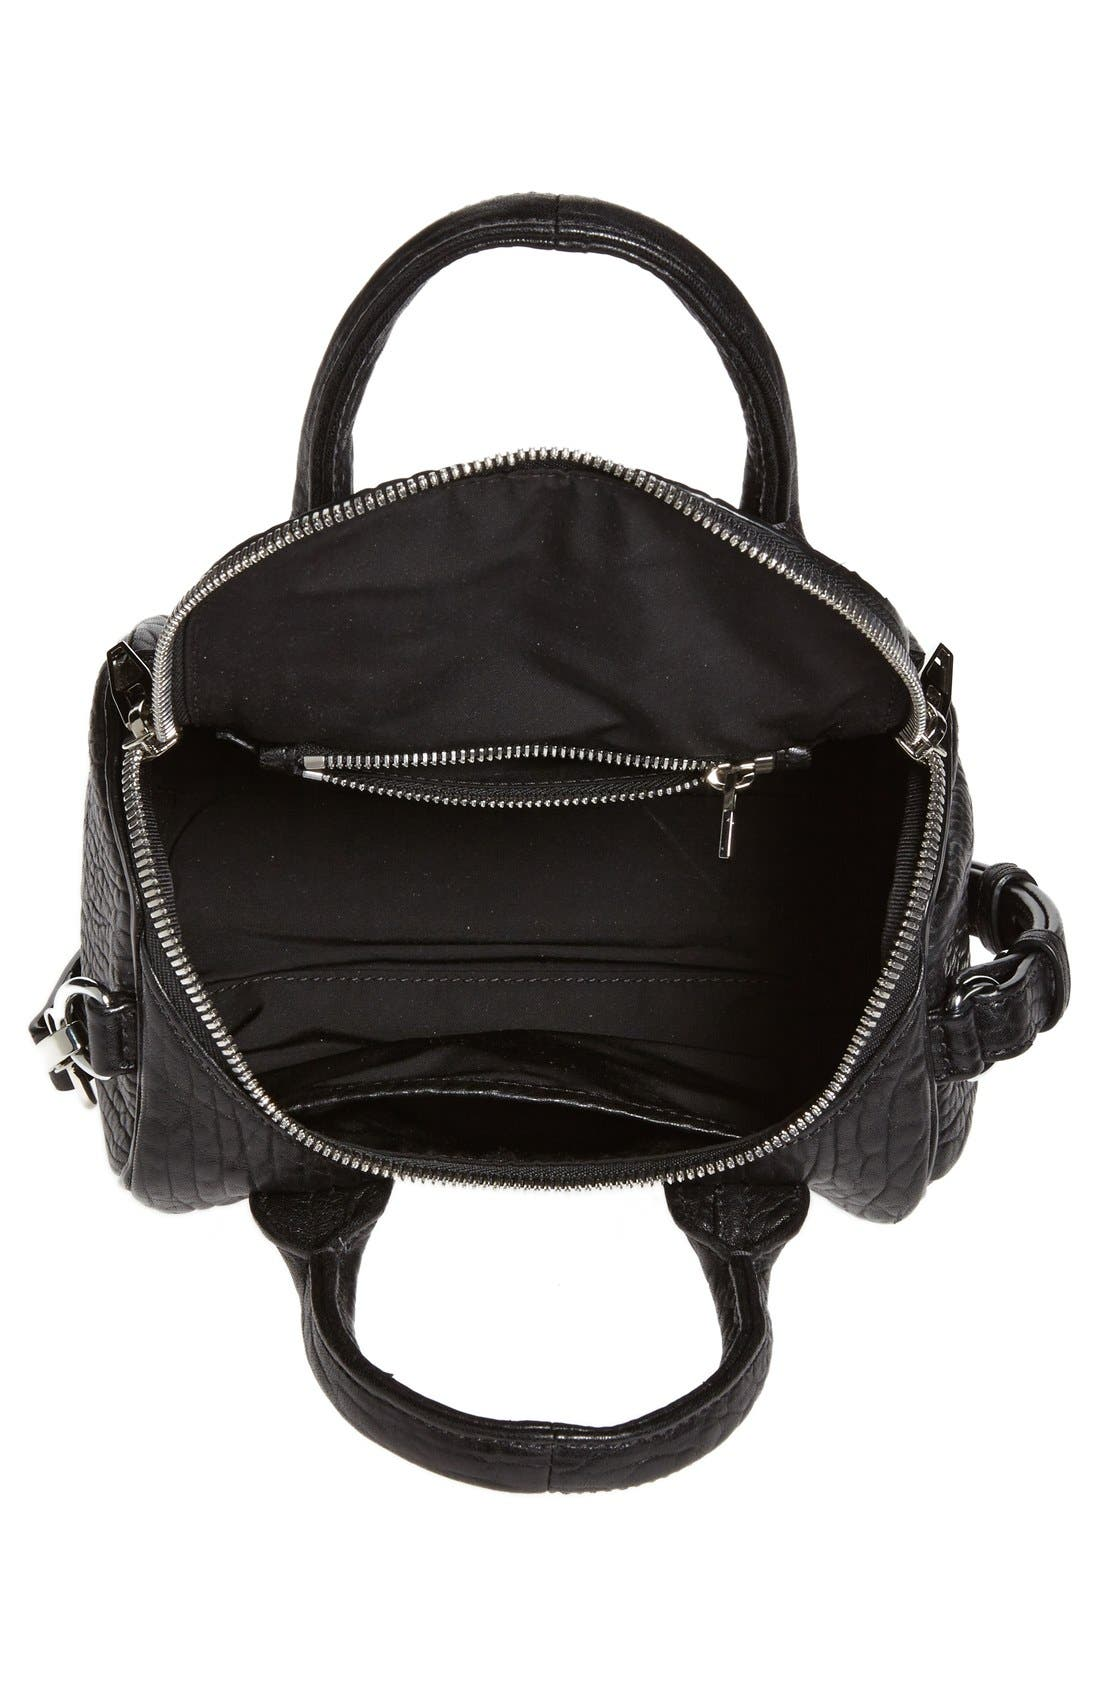 Alternate Image 3  - Alexander Wang 'Mini Rockie - Nickel' Leather Crossbody Satchel